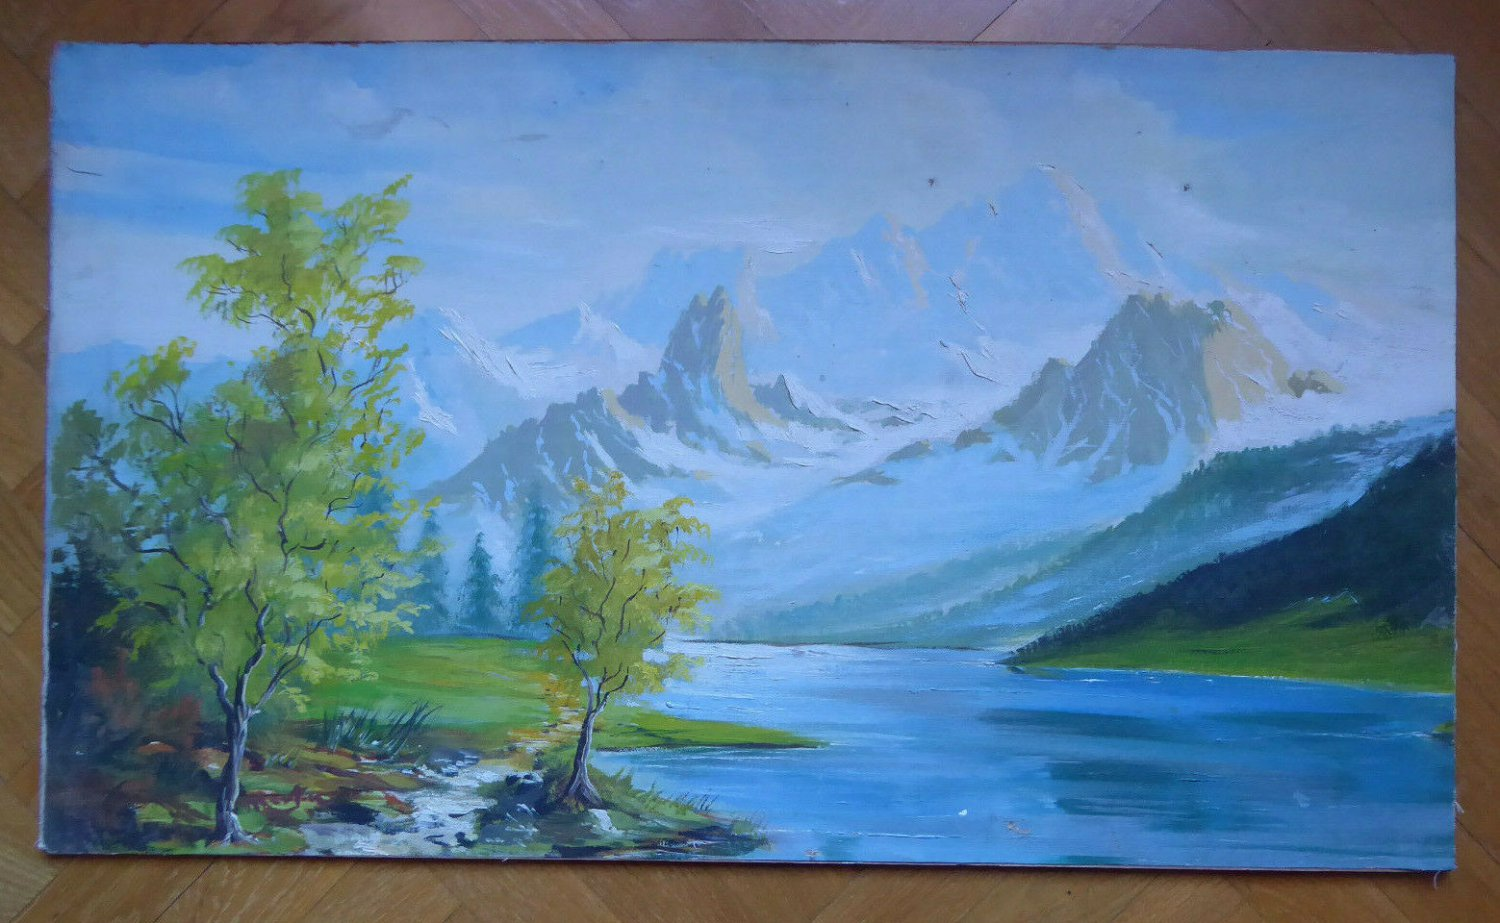 Painting Anonimo Spanish Of '900 landscape Di Montagna Patagonia Vintage MD6